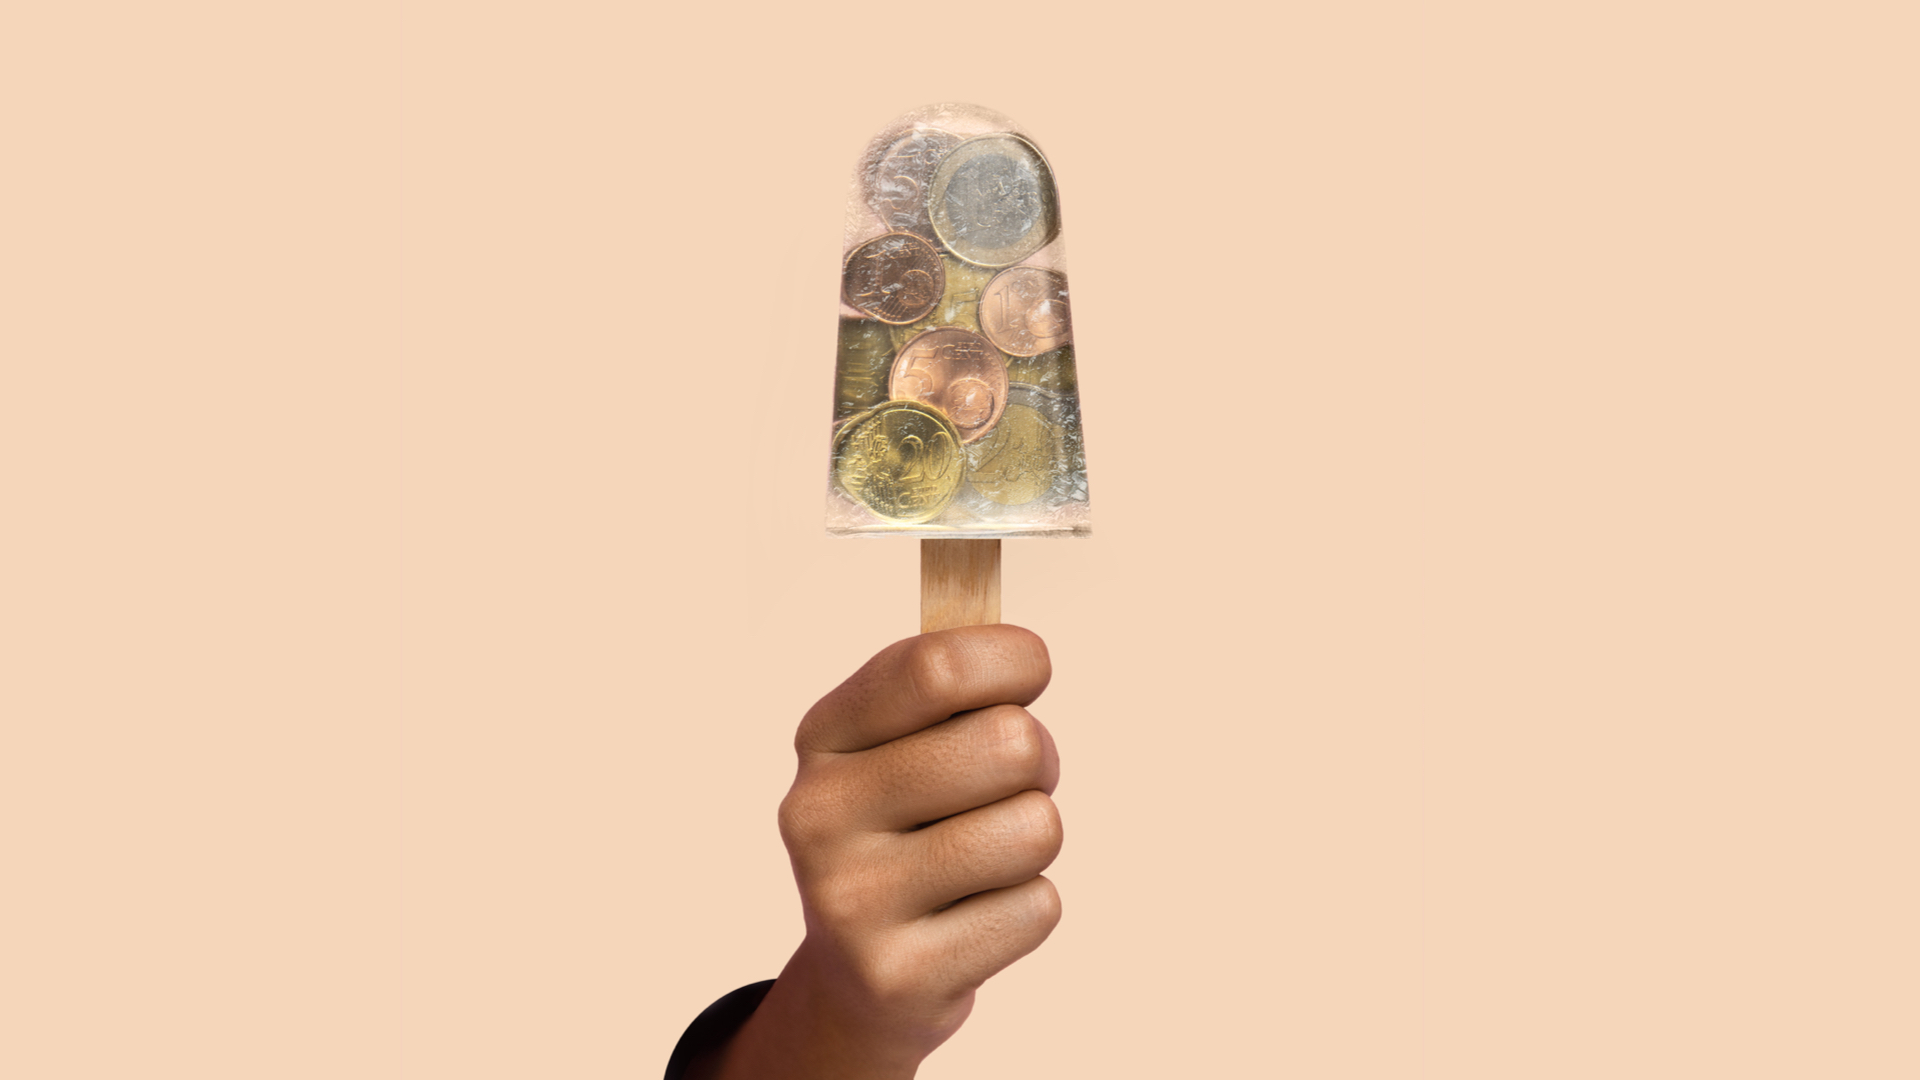 N26 Press Image of our 26 reasons campaign with a hand holding a see-through ice cream with coins in there